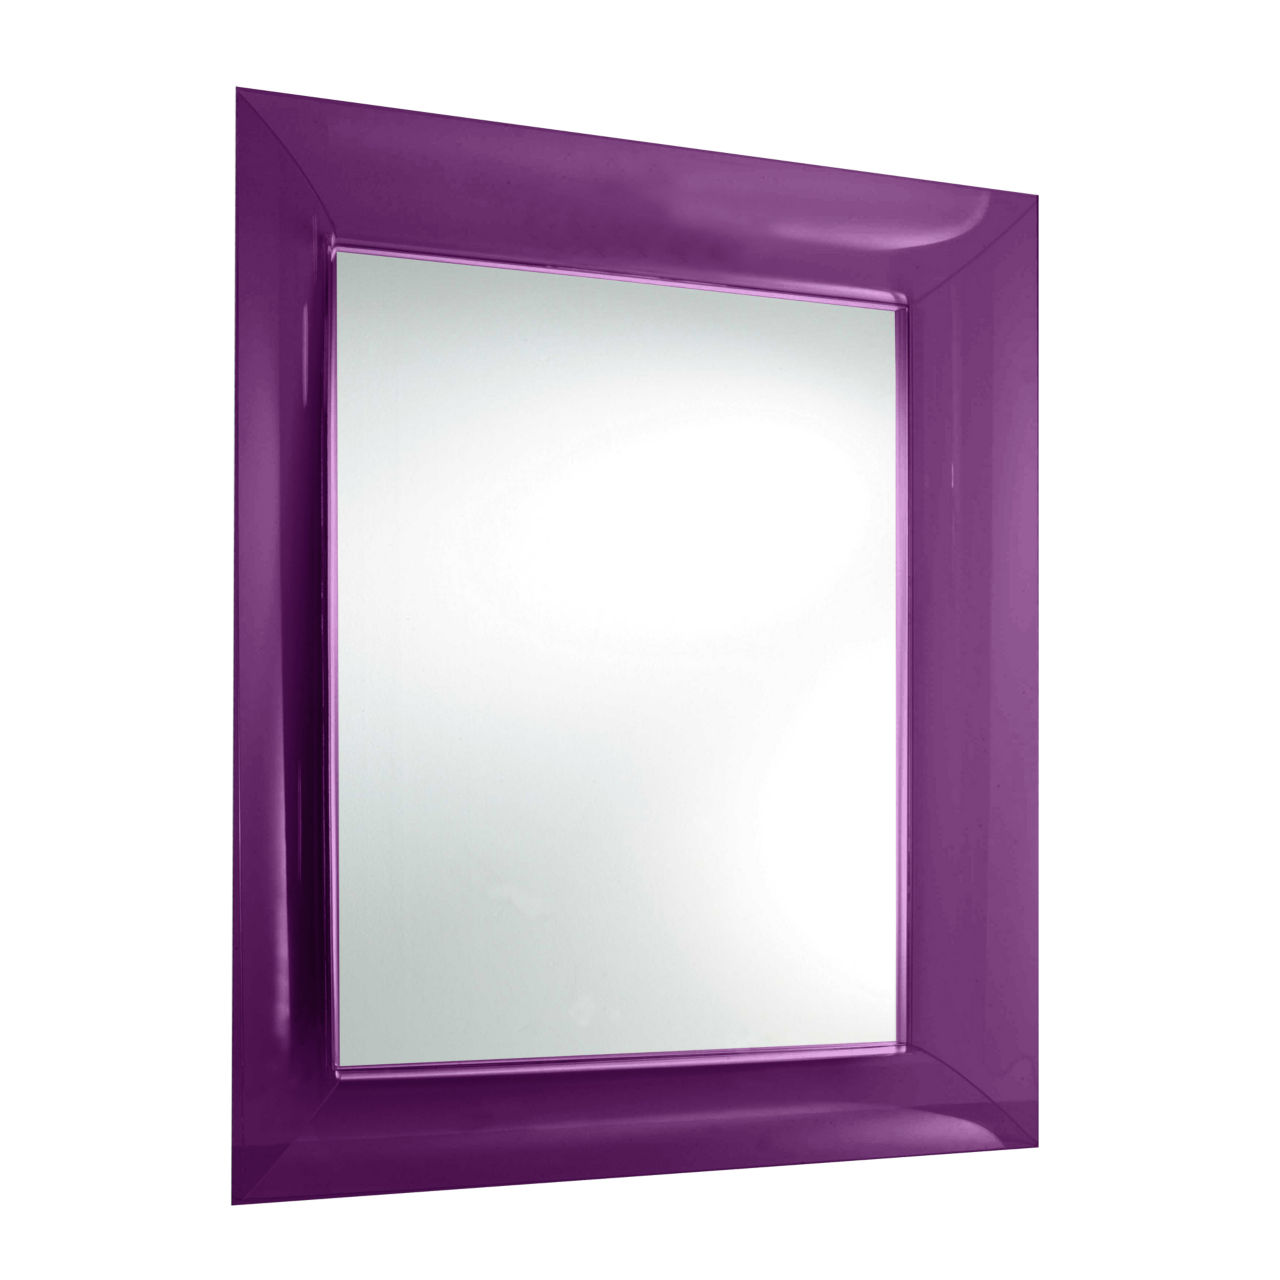 Francois Ghost Mirror in Purple Large by Kartell